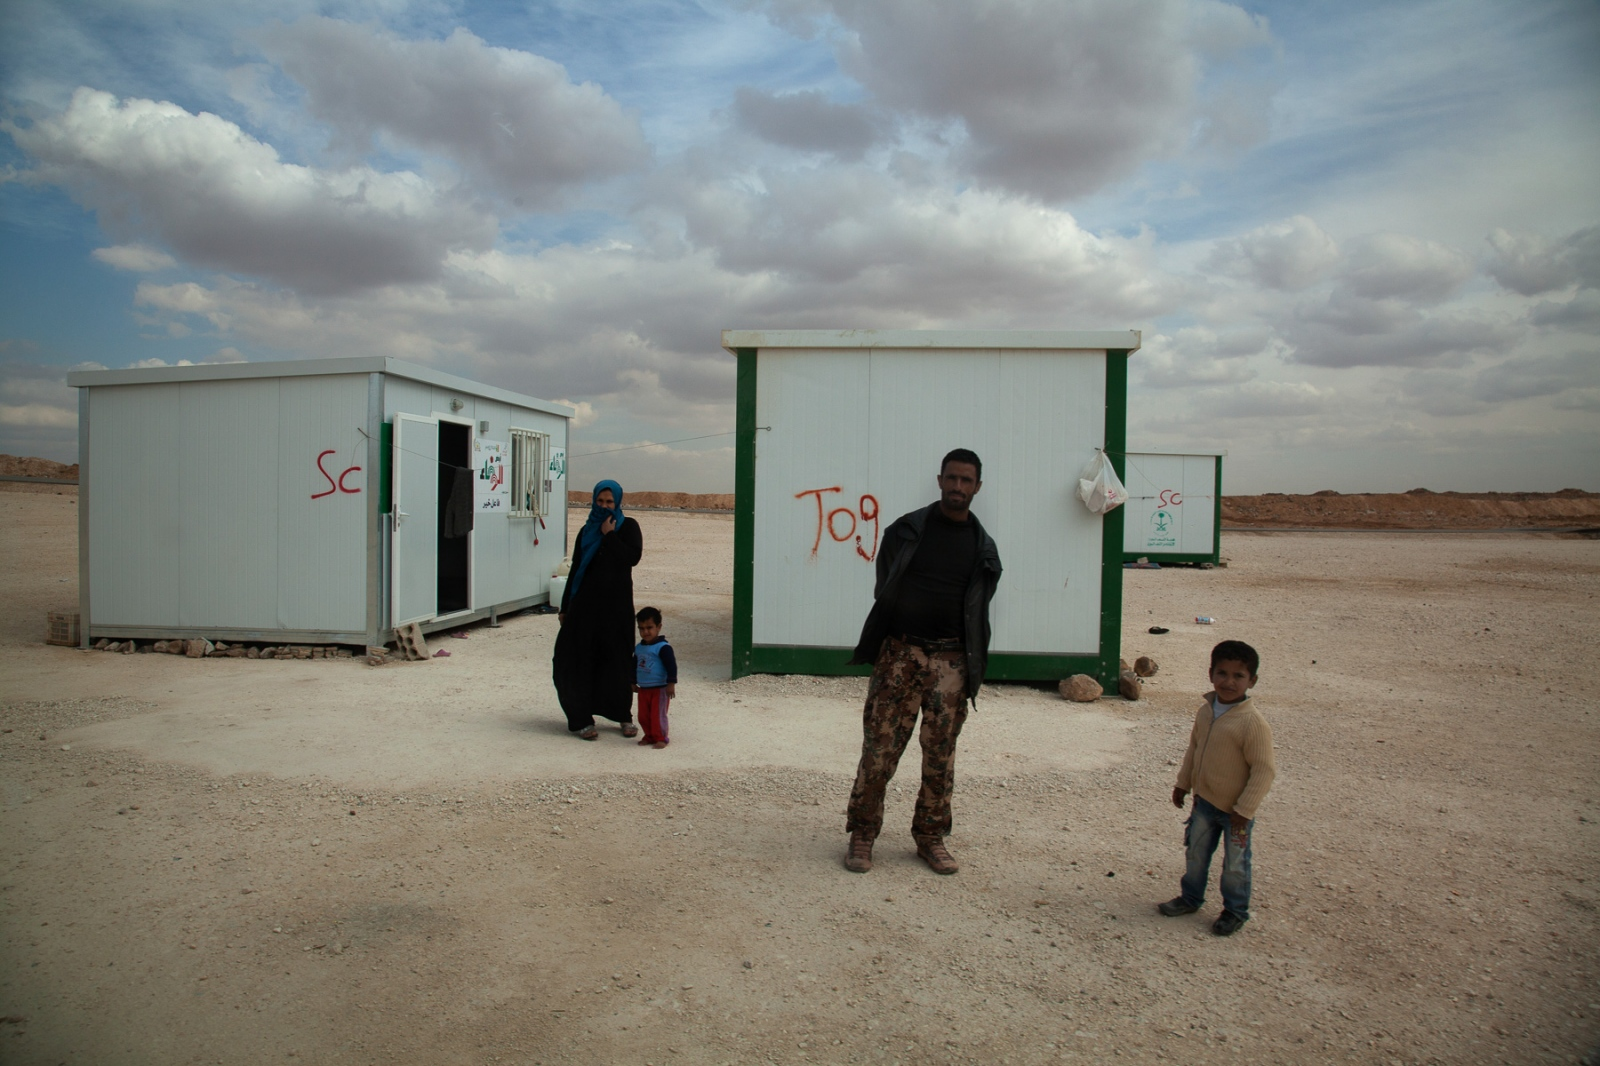 At Zaatari Refugee Camp many refugees live in small metal containers.